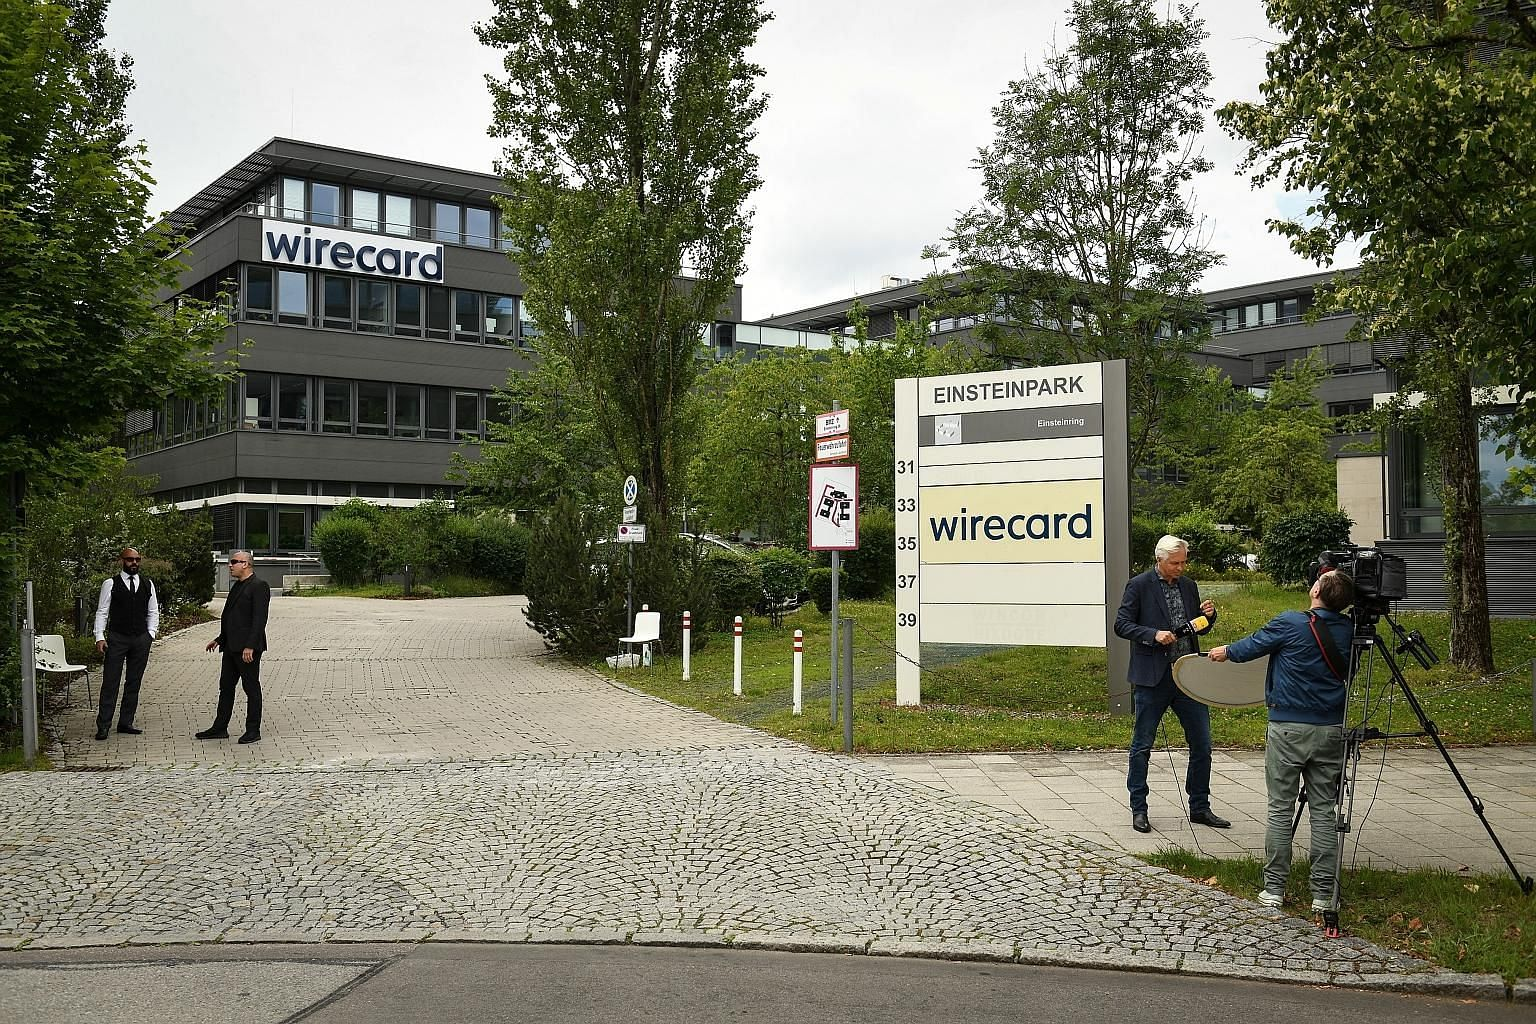 Wirecard filed for court protection from creditors on Thursday. Creditors who lent it as much as €3.2 billion (S$5 billion) are wondering if they will ever see their money again.